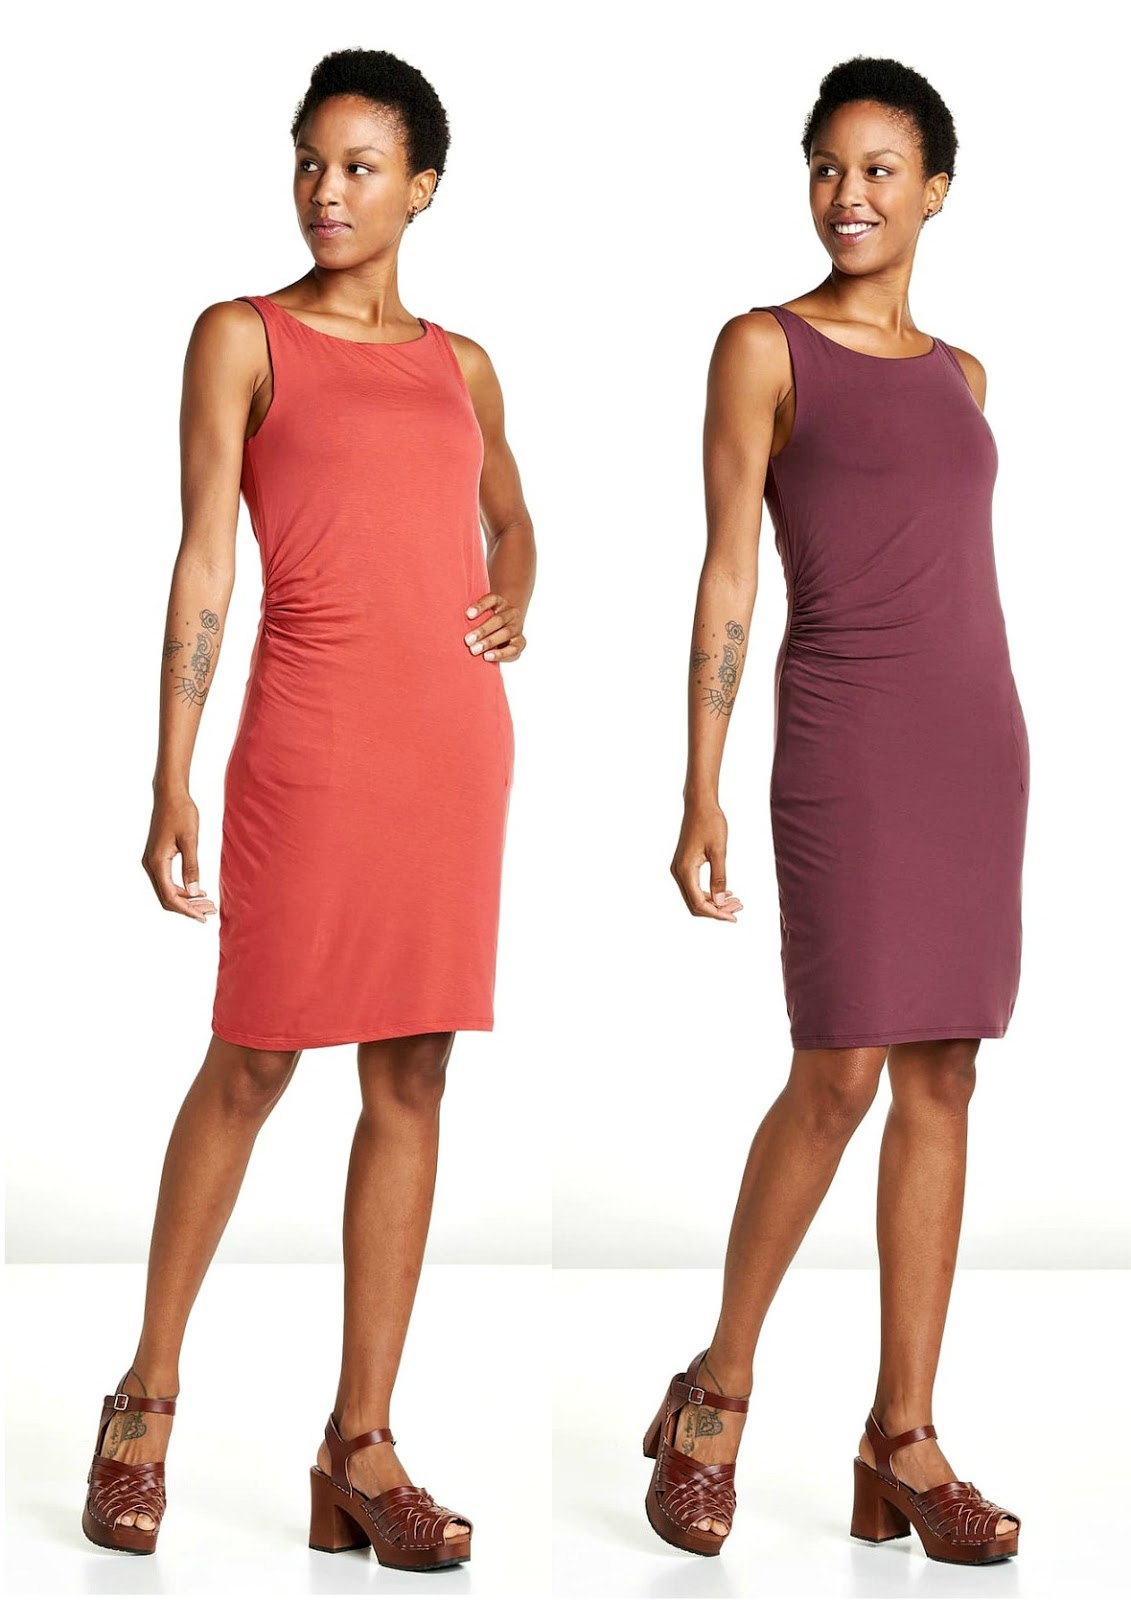 Convertible Travel Dresses